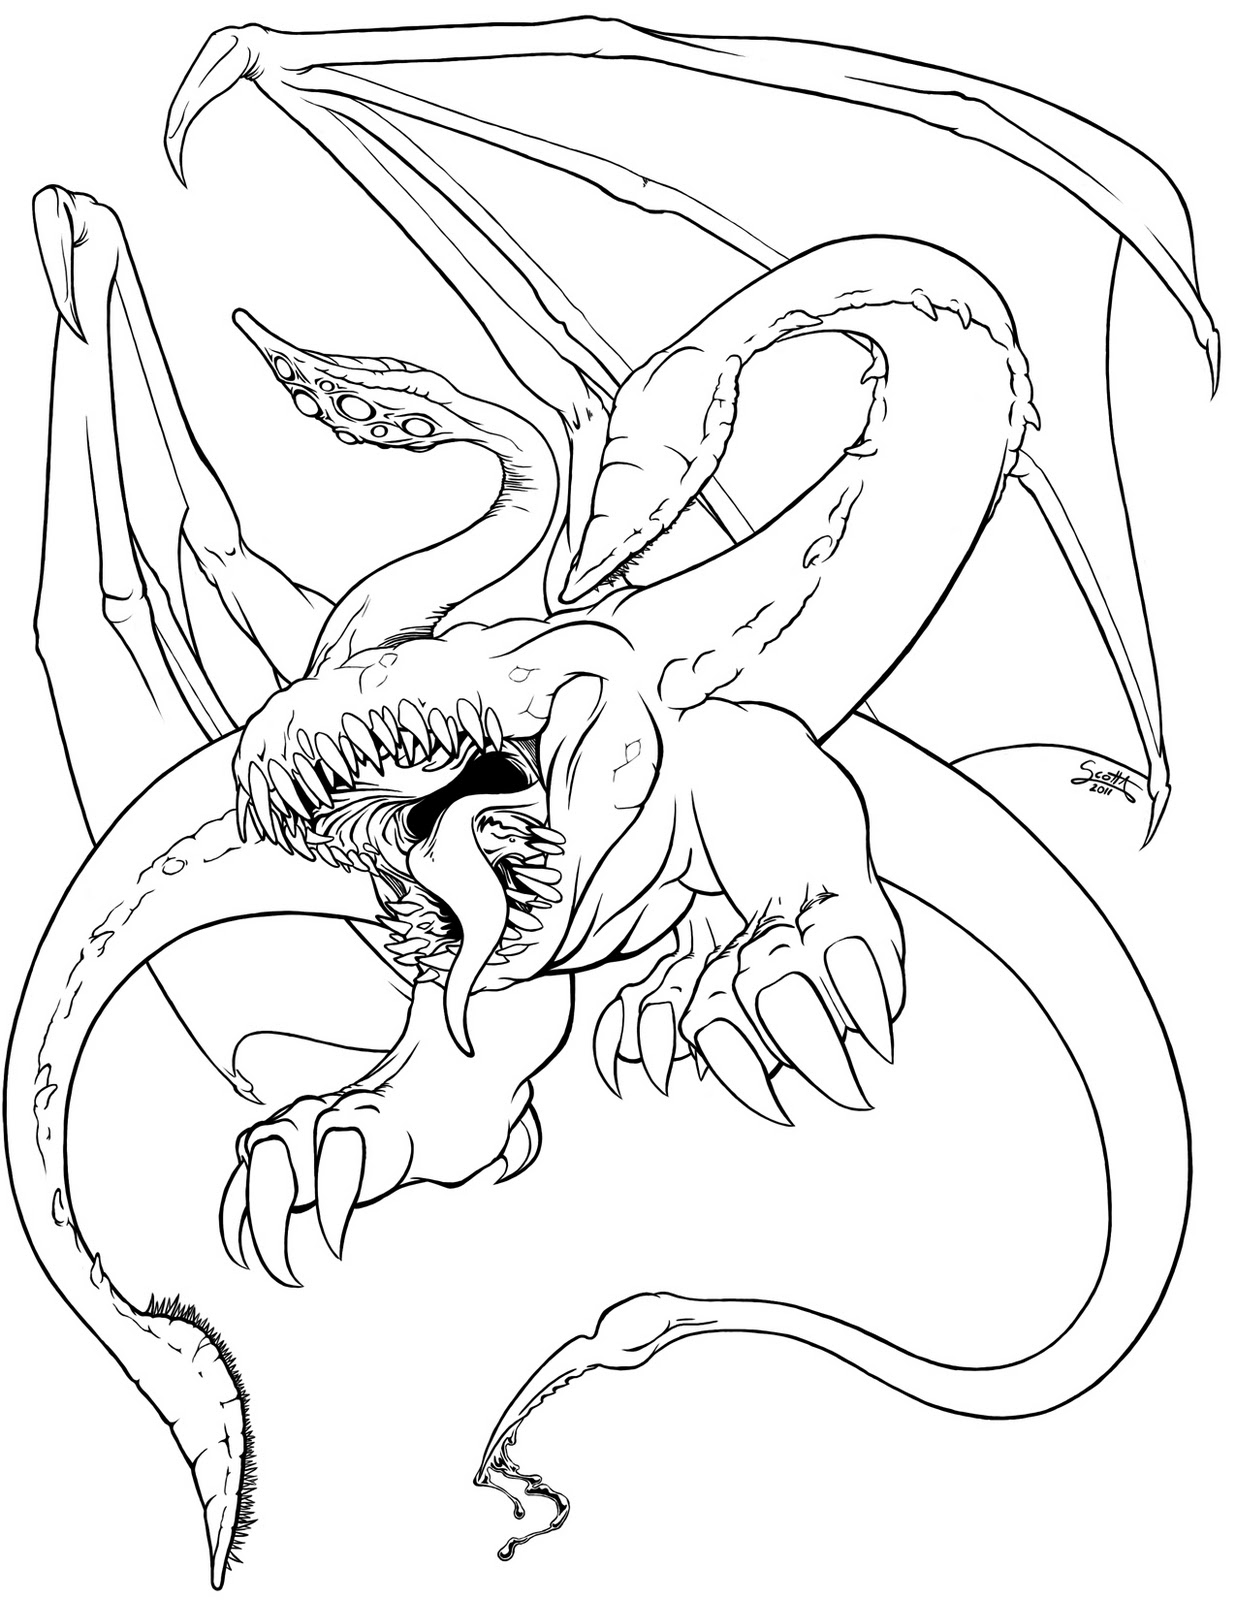 candy skull coloring pages - dibujo dragon para colorear